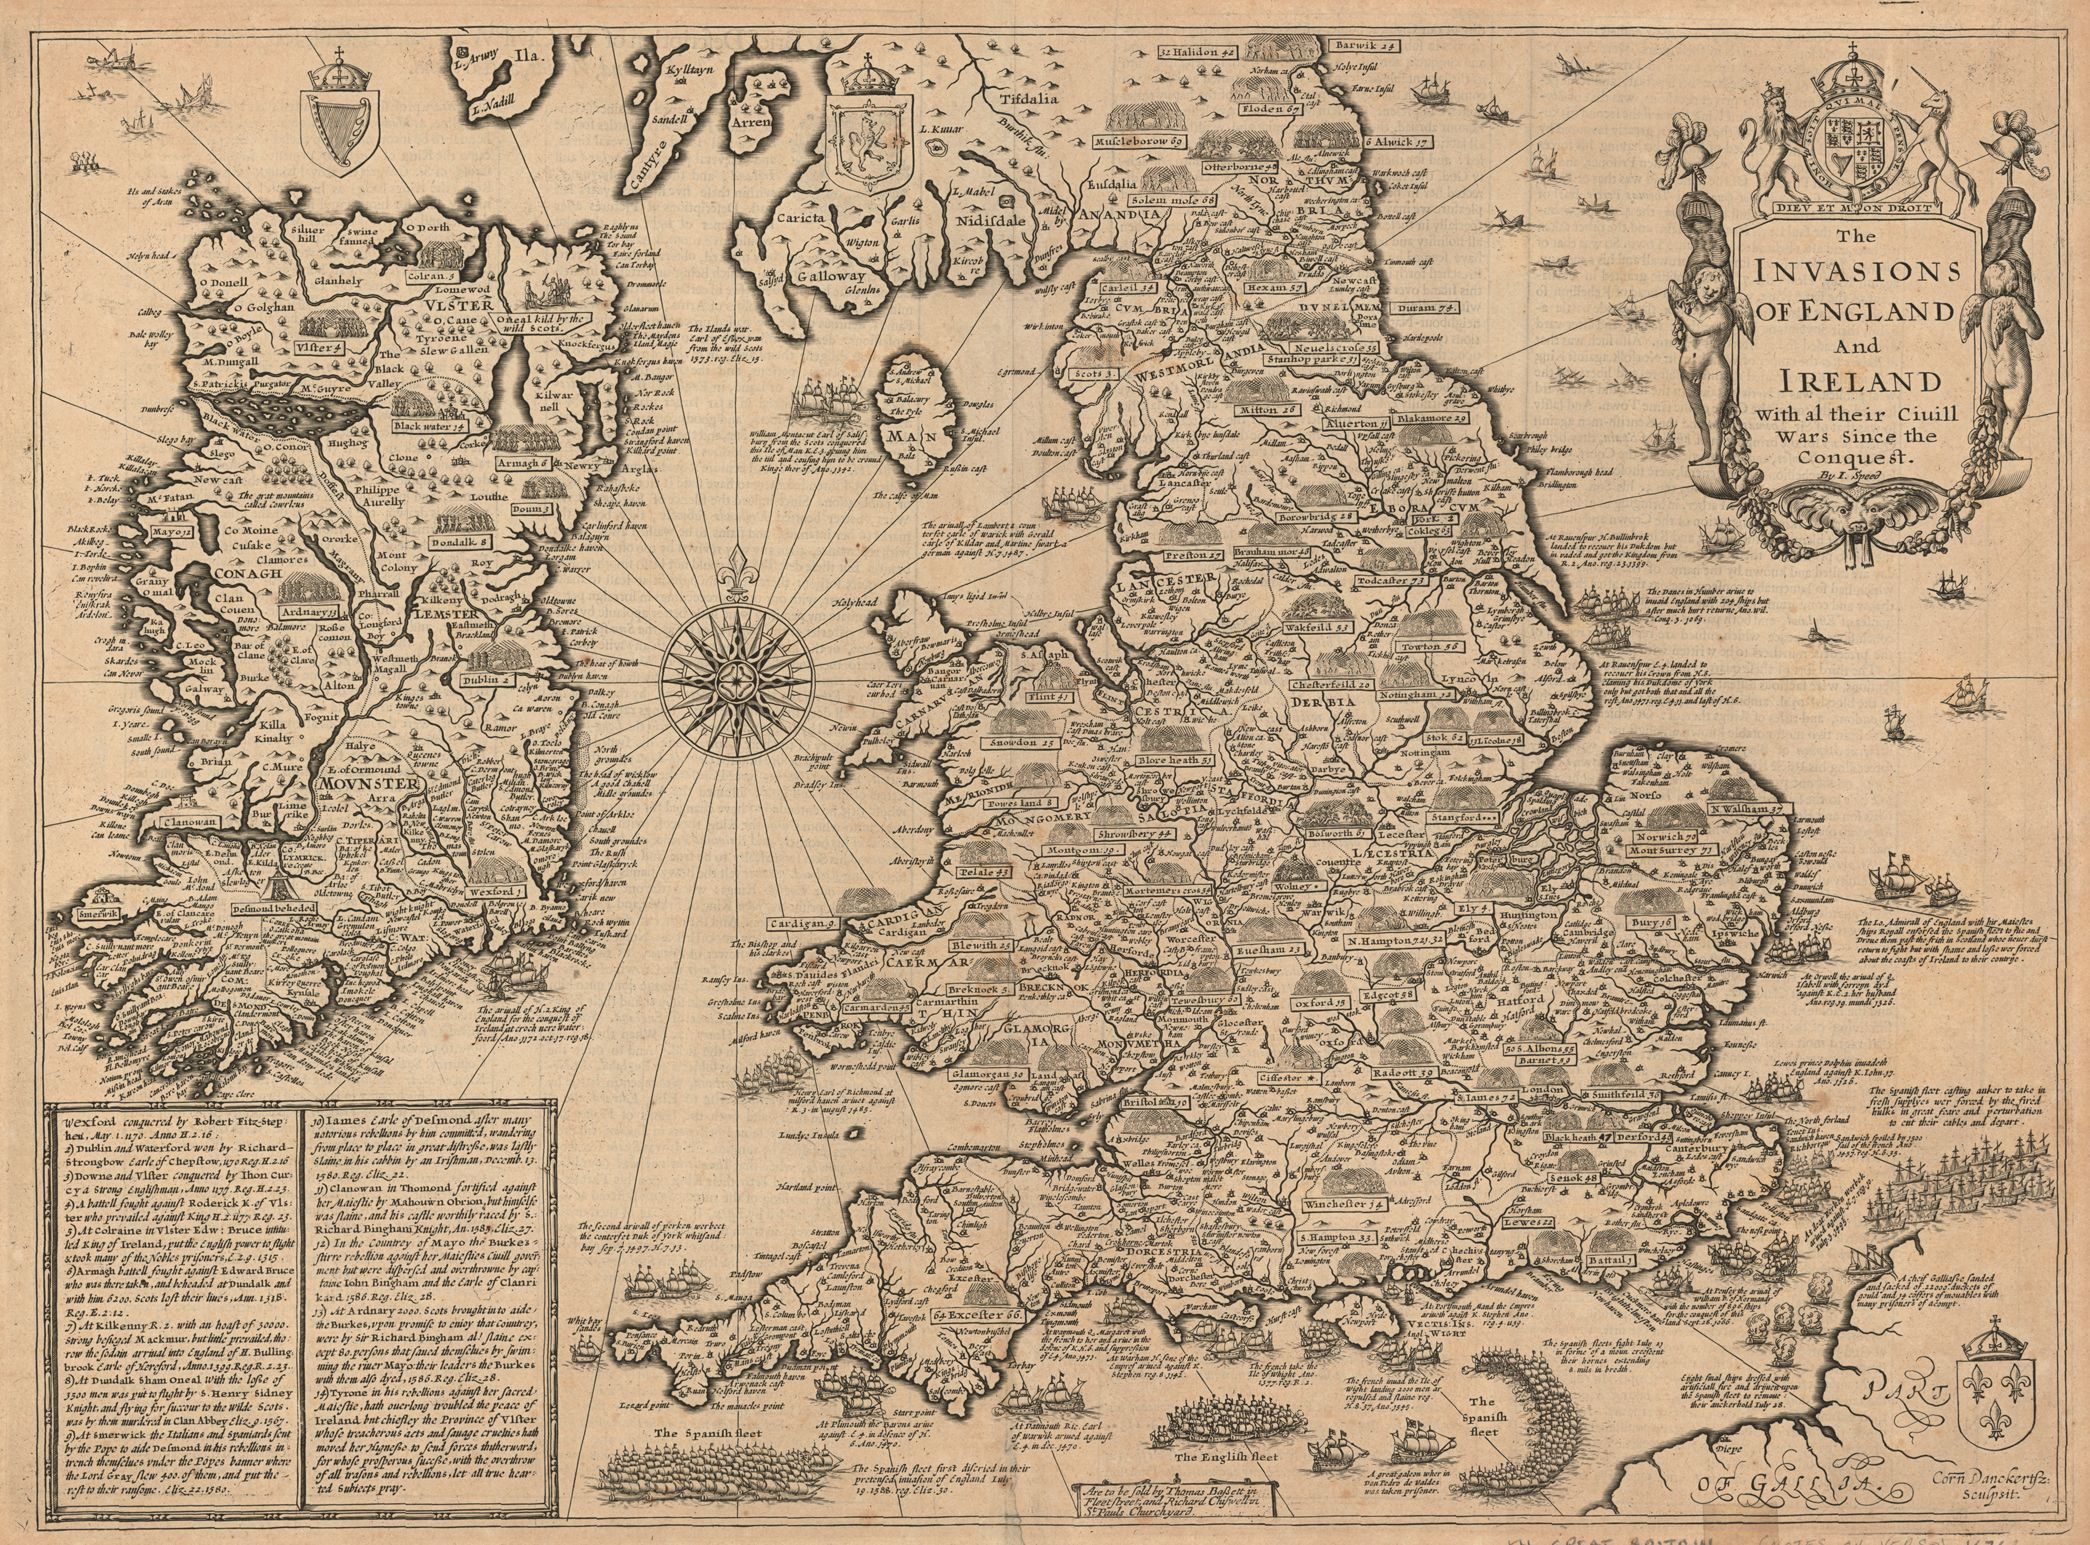 The Invasions Of England And Ireland With Al Their Ciuill Wars Since The Conquest Map By John Speed 1676 Antique World Map Ancient Maps Old World Maps